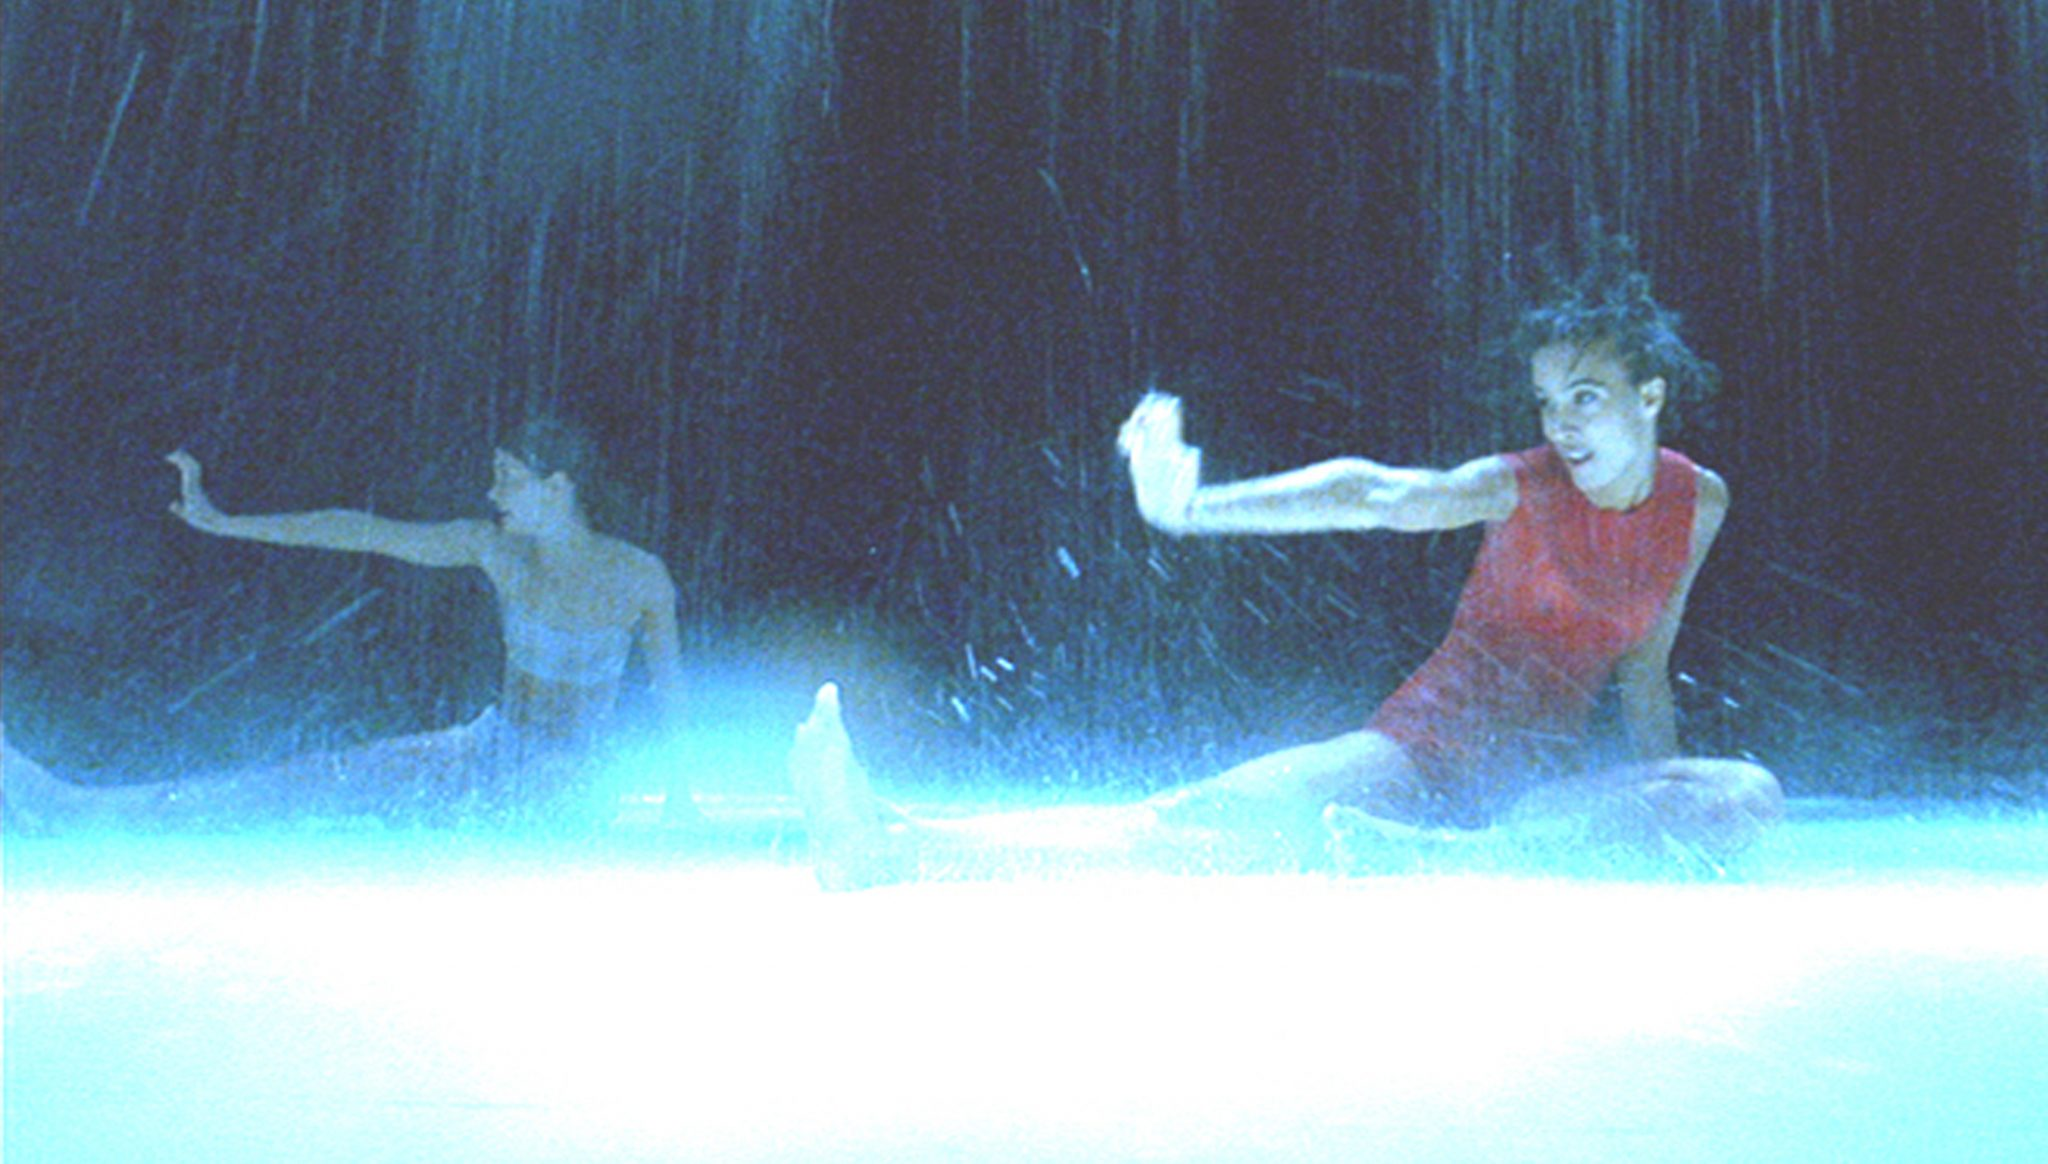 Still from Chrysalis (2002), by choreographed by Wayne McGregor, directed by Olivier Mėgaton.